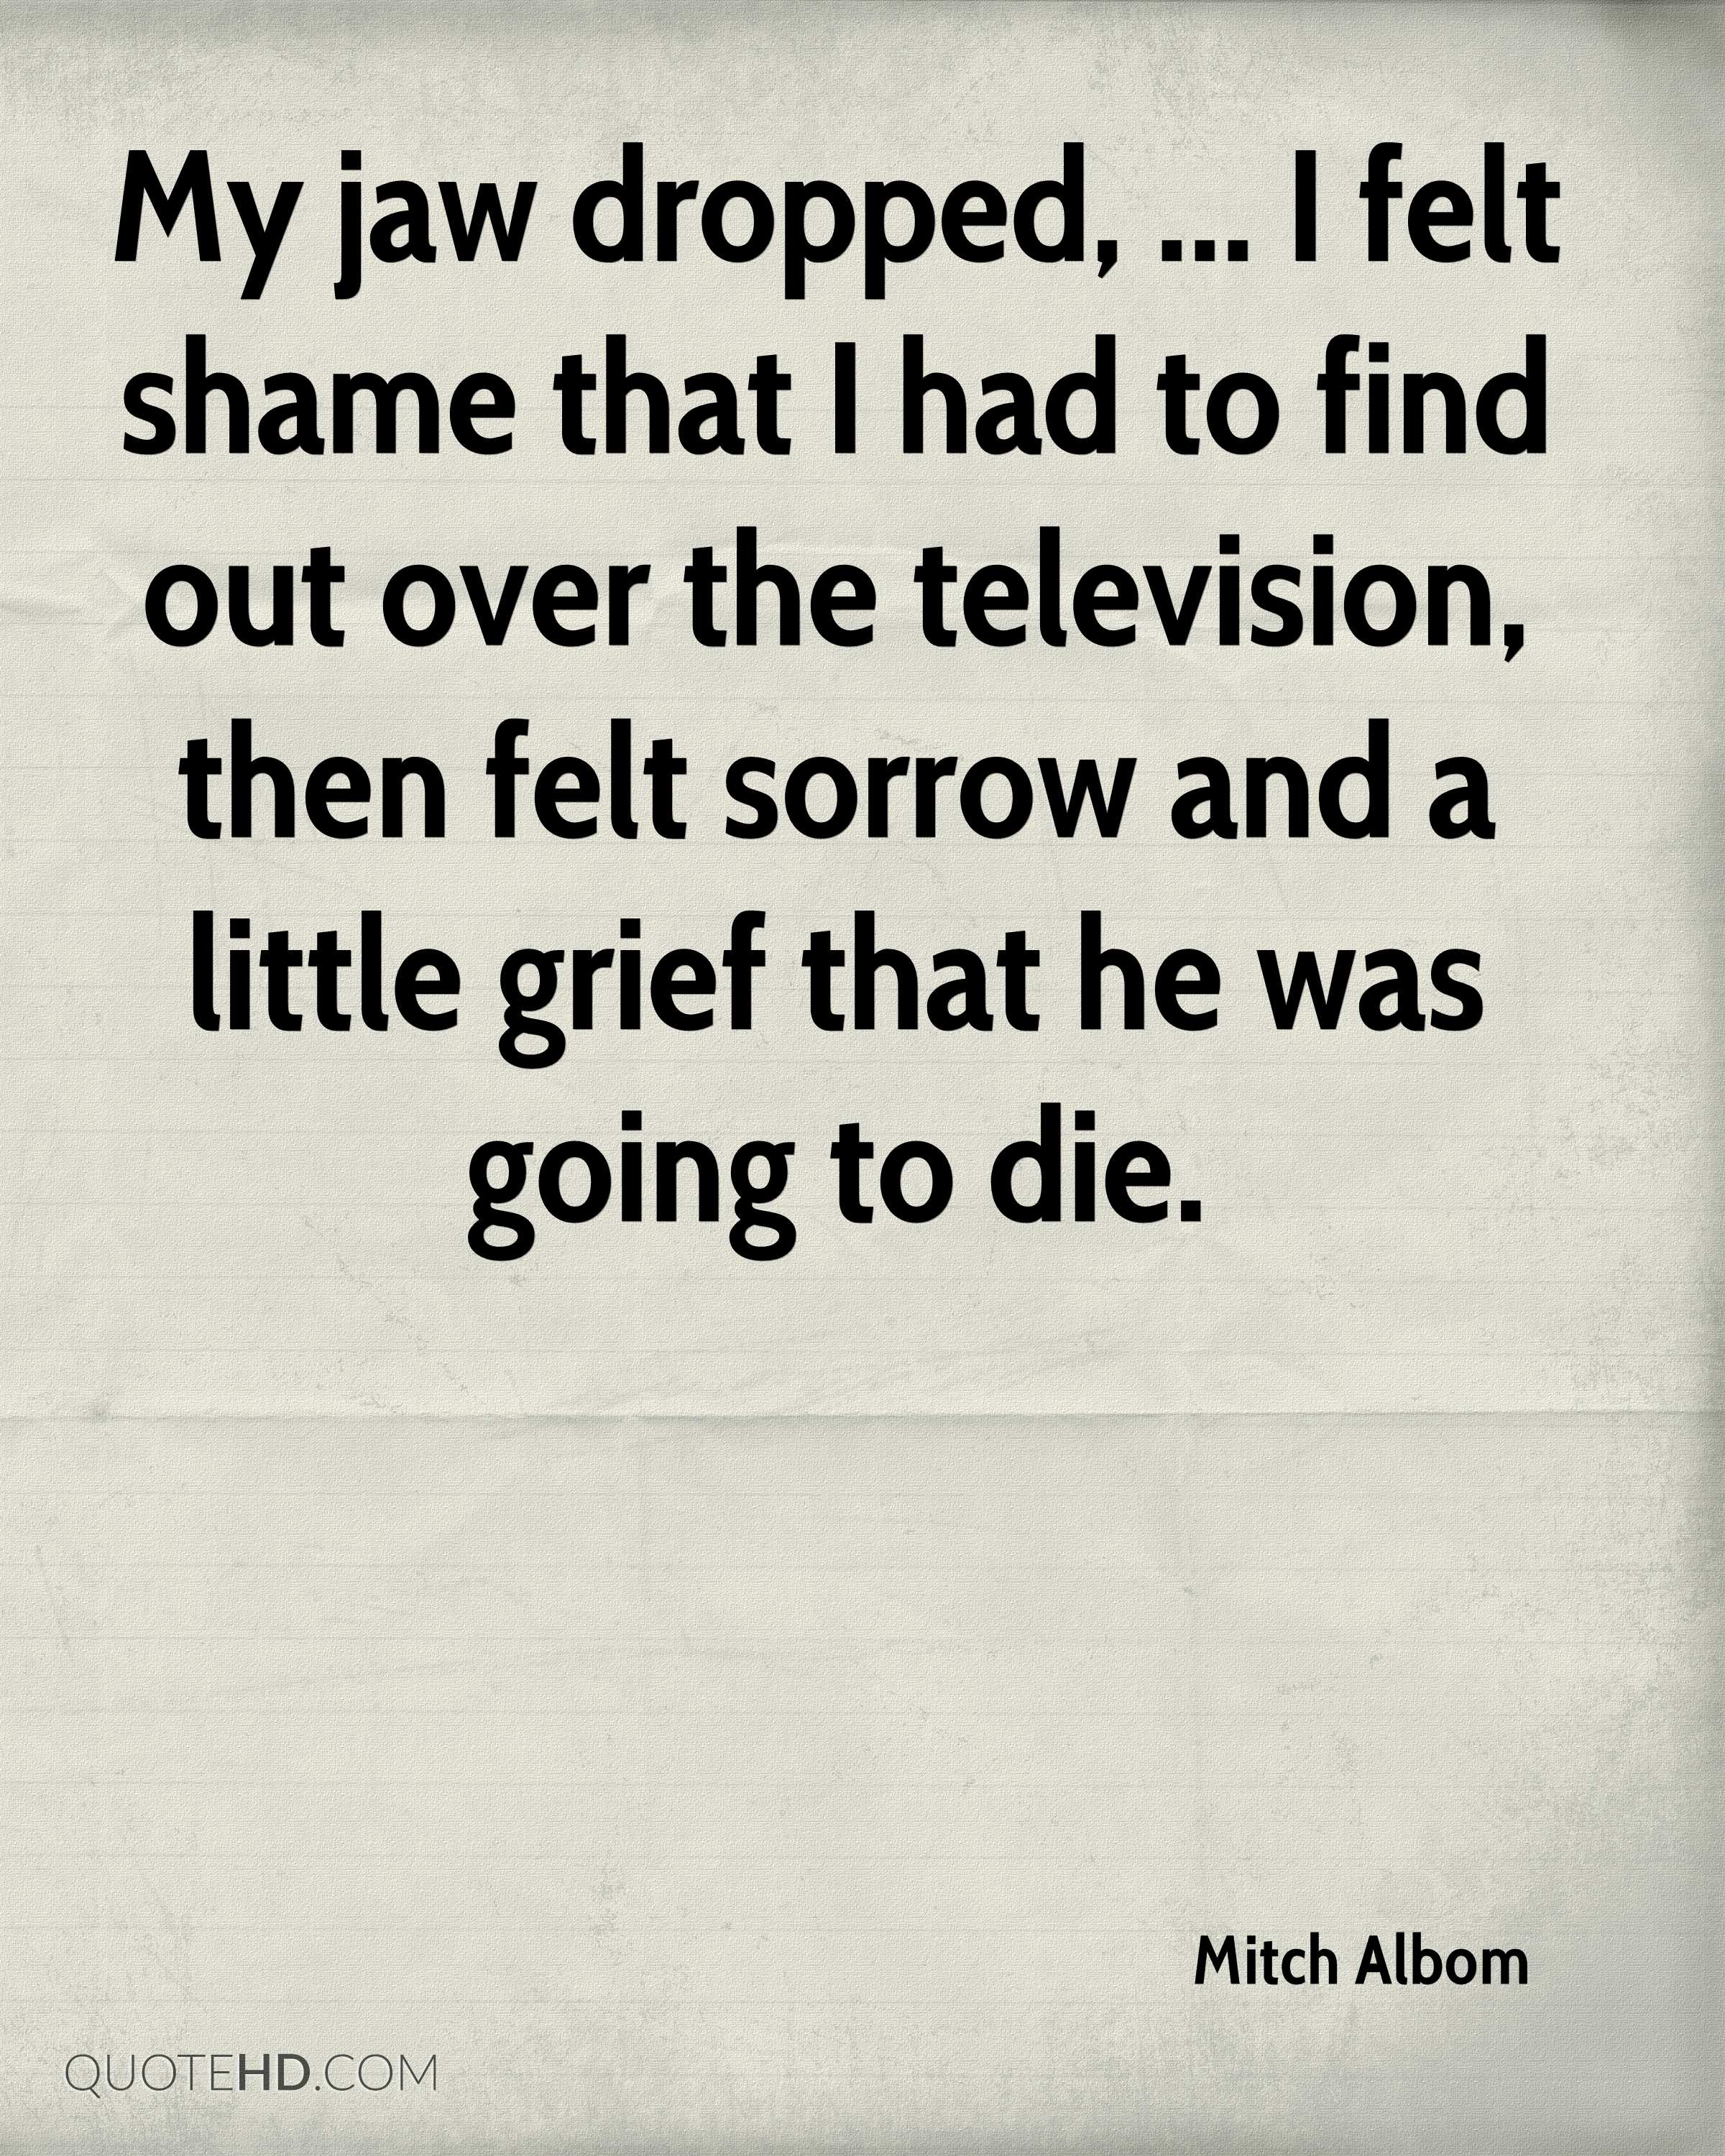 My jaw dropped, ... I felt shame that I had to find out over the television, then felt sorrow and a little grief that he was going to die.